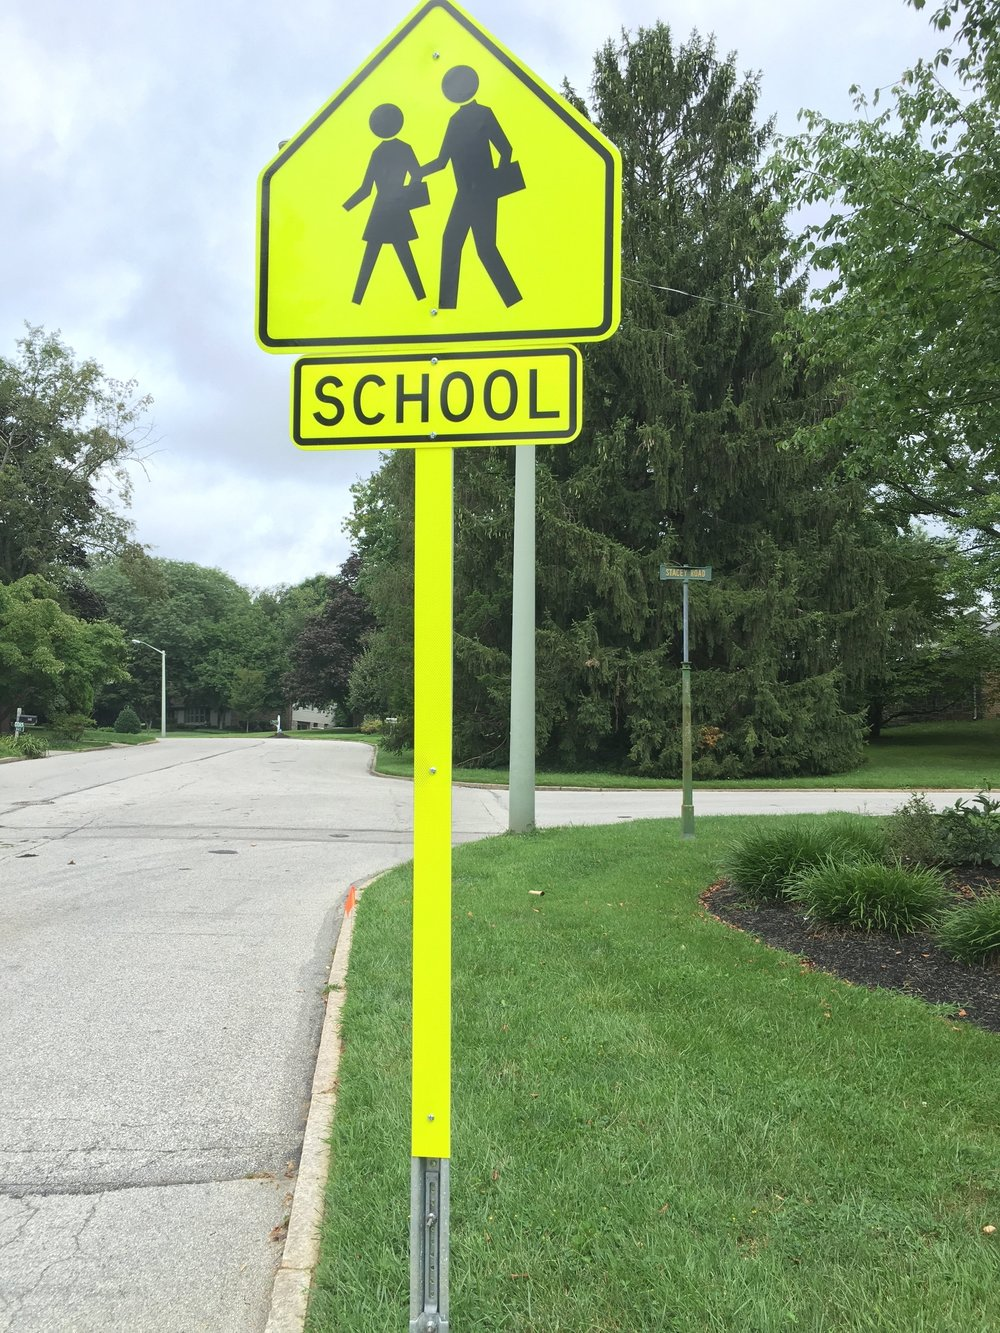 New high visibility sign installed by Lower Merion School District at our request.  It sits at the corner of Margo Lane and Stacey Road and alerts drivers to the possibility of children walking and the approaching elementary school. Please remember that Margo Lane is 1-way from Ardleigh to Righters Mill Road during the school year, 8:30am-9:00am and 3:30pm-4:00pm to allow for orderly and safe pick-up and drop-off.